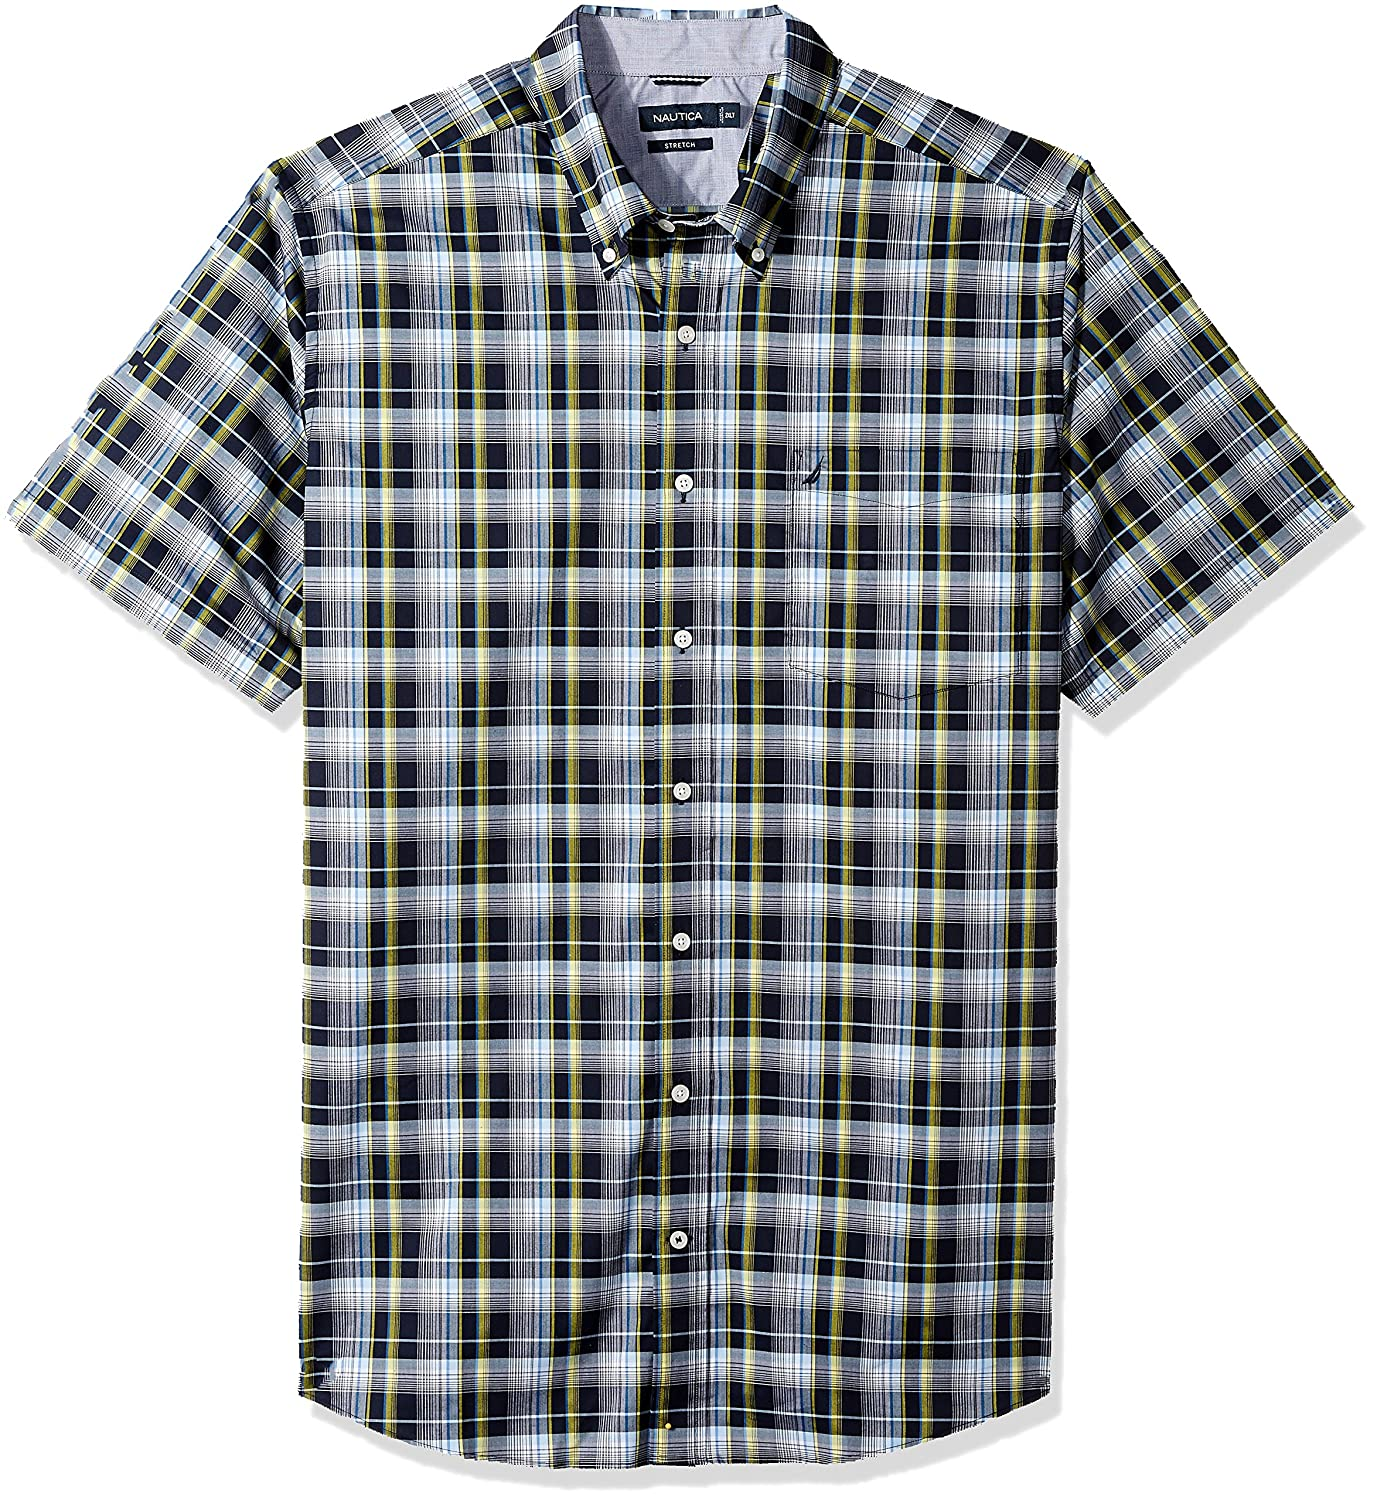 Nautica Mens Big and Tall Wrinkle Resistant Short Sleeve Plaid Button Down Shirt